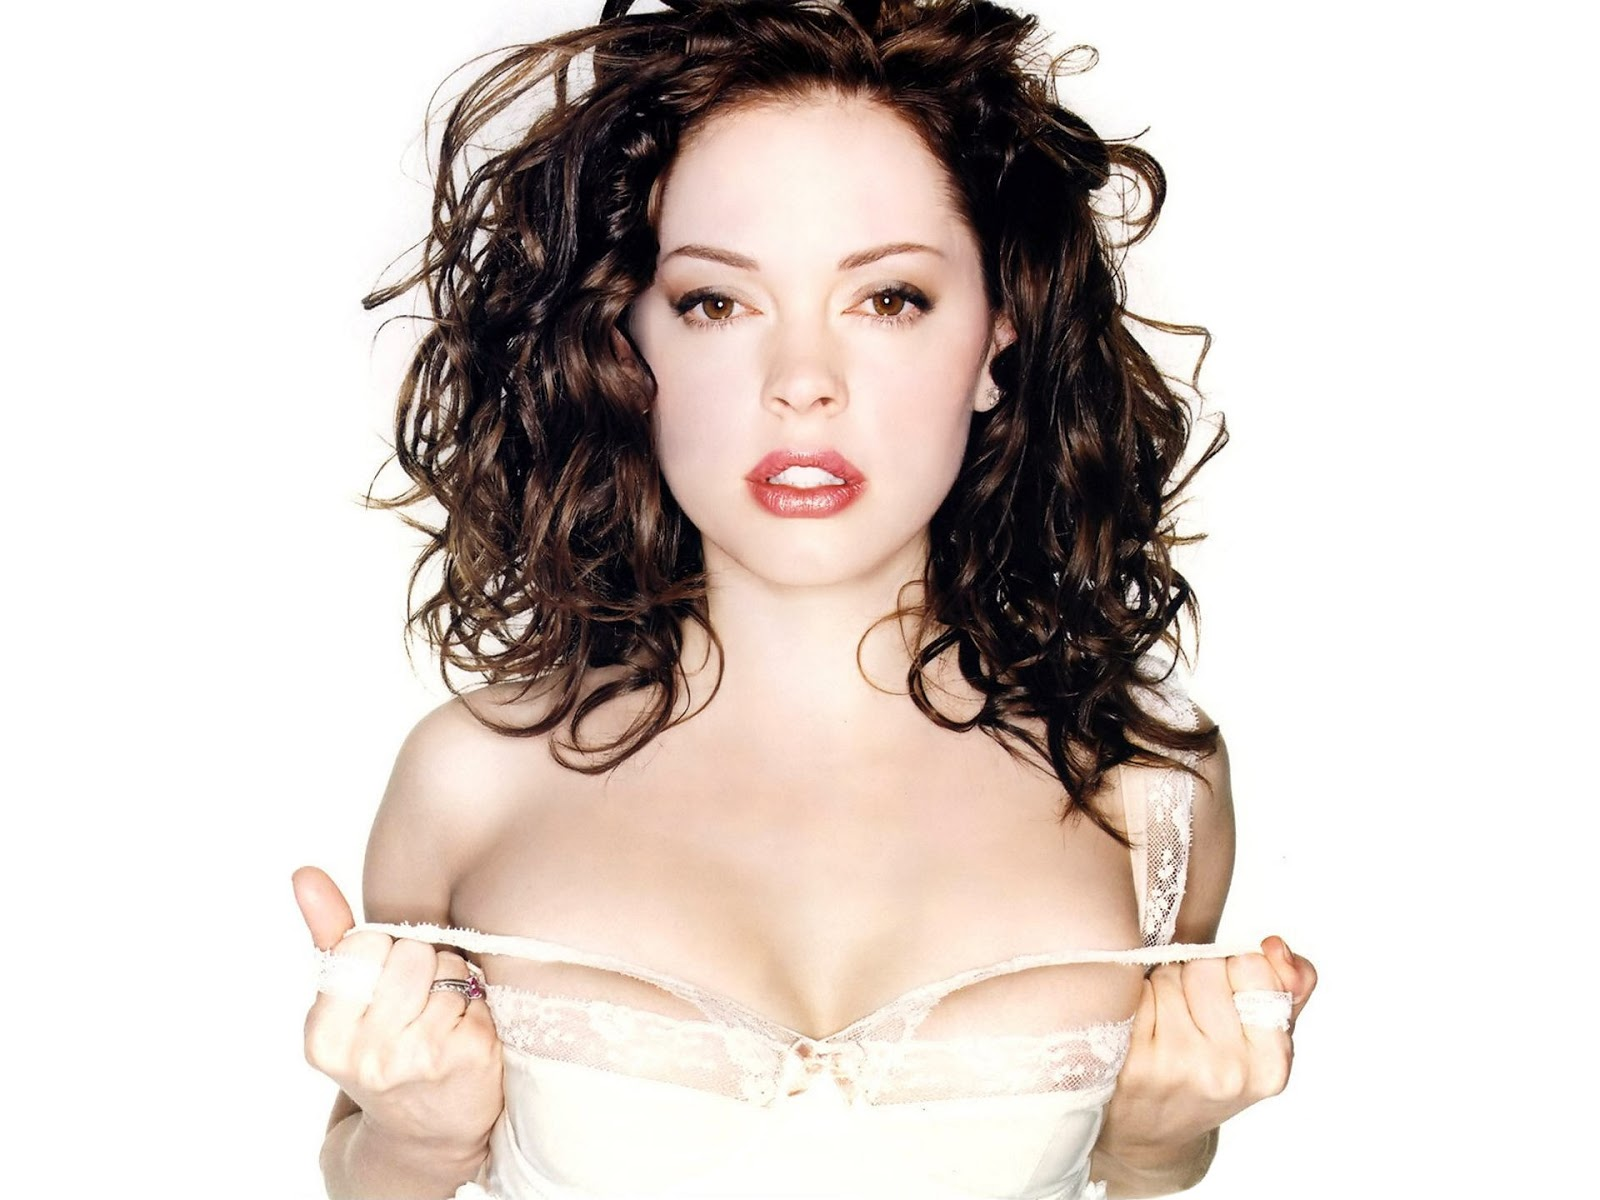 Rose McGowan nude and threesome sex